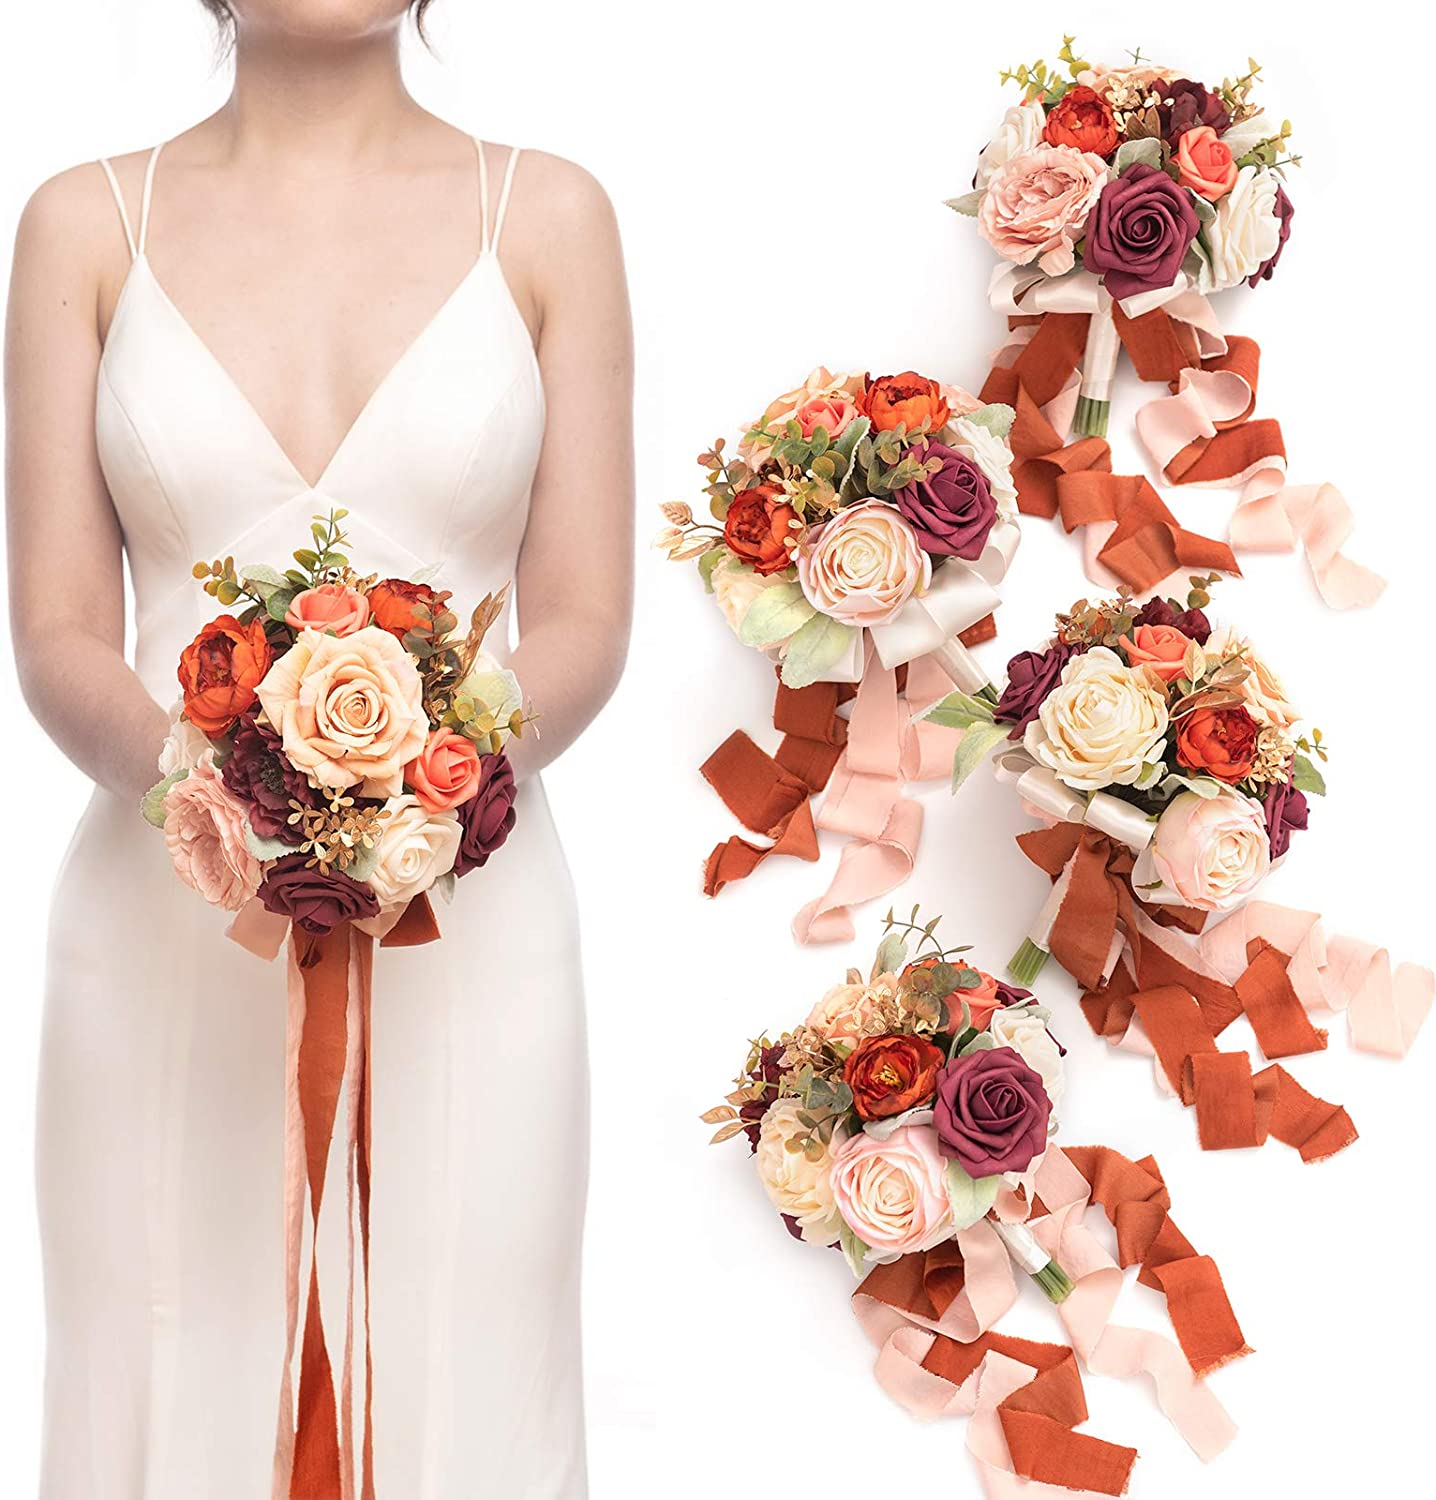 Ling's moment Burnt Orange 7 Bou Discount is also underway Inch Wedding Reservation Artificial Flowers